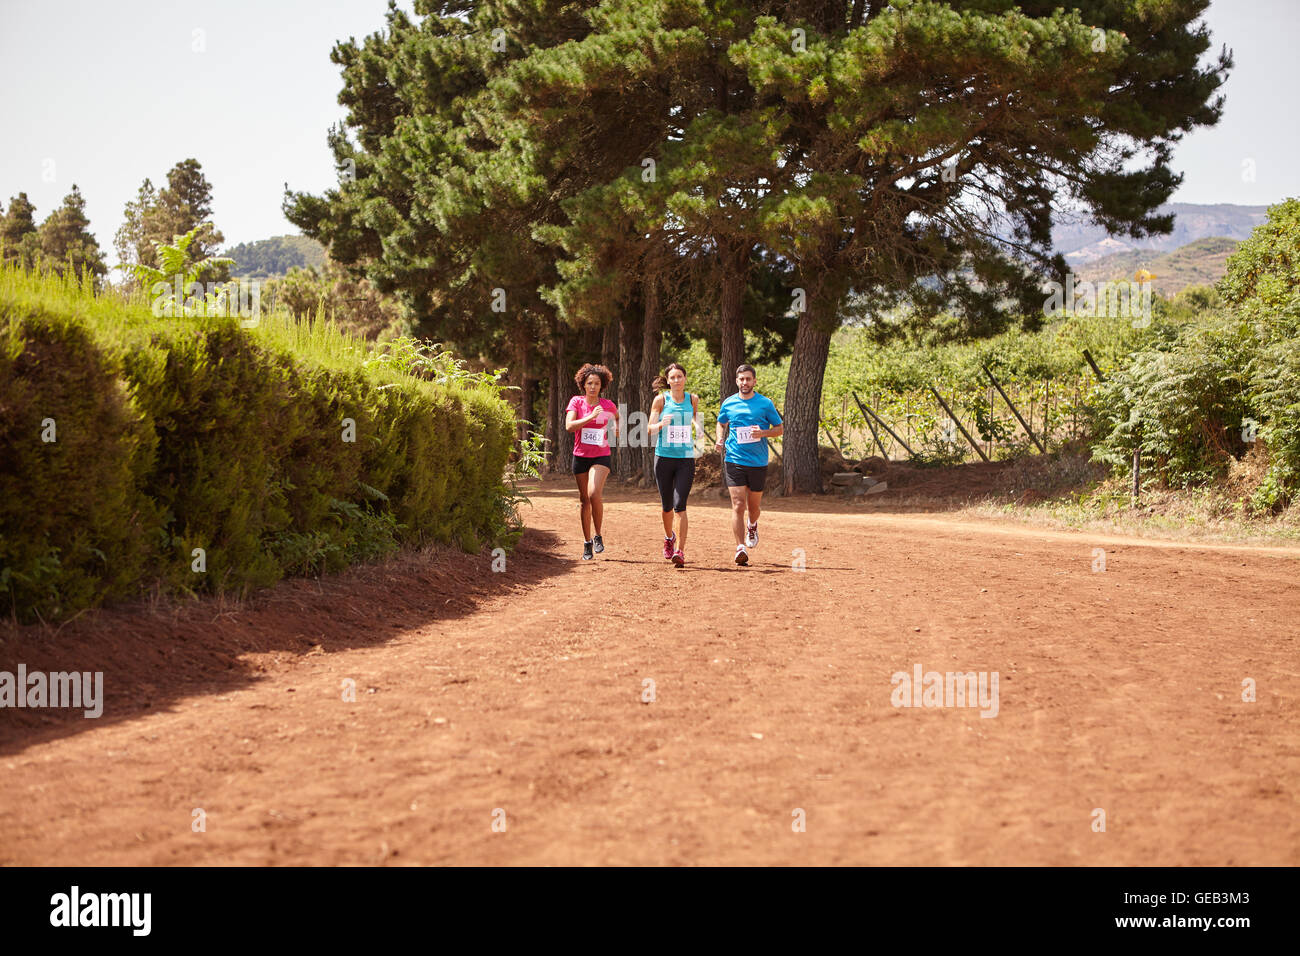 Three distance runners in a race on a gravel path with trees behind them wearing casual running clothes in the late - Stock Image